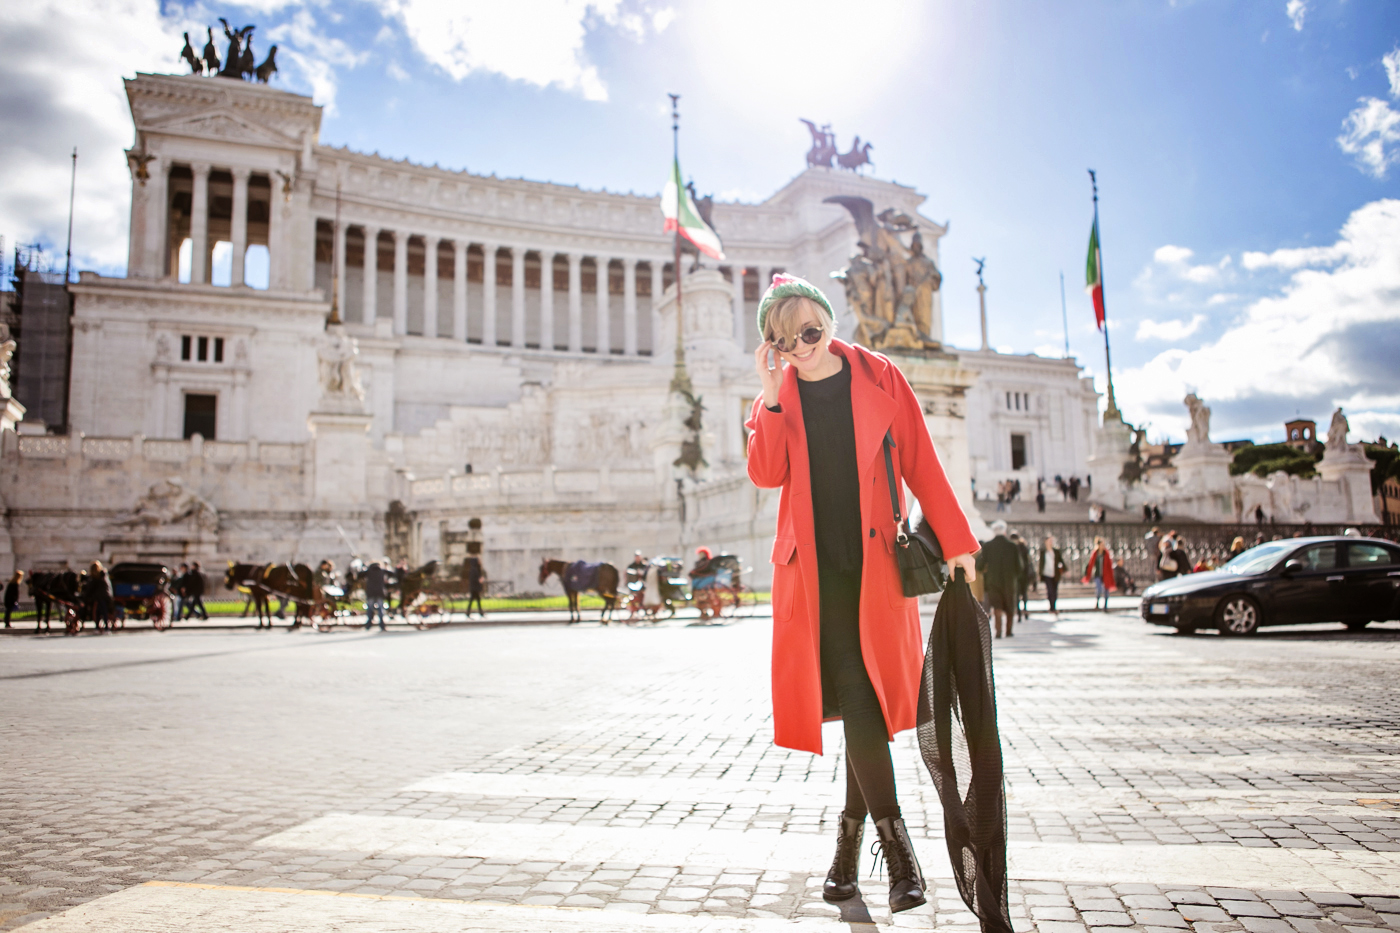 darya kamalova thecablook russian italian fashion bogger street style trend asos long red coat watermelon hat proenza schouler ps11 bag dr denim jeans rome roma centro storico le bunny blue booties italia italy-32